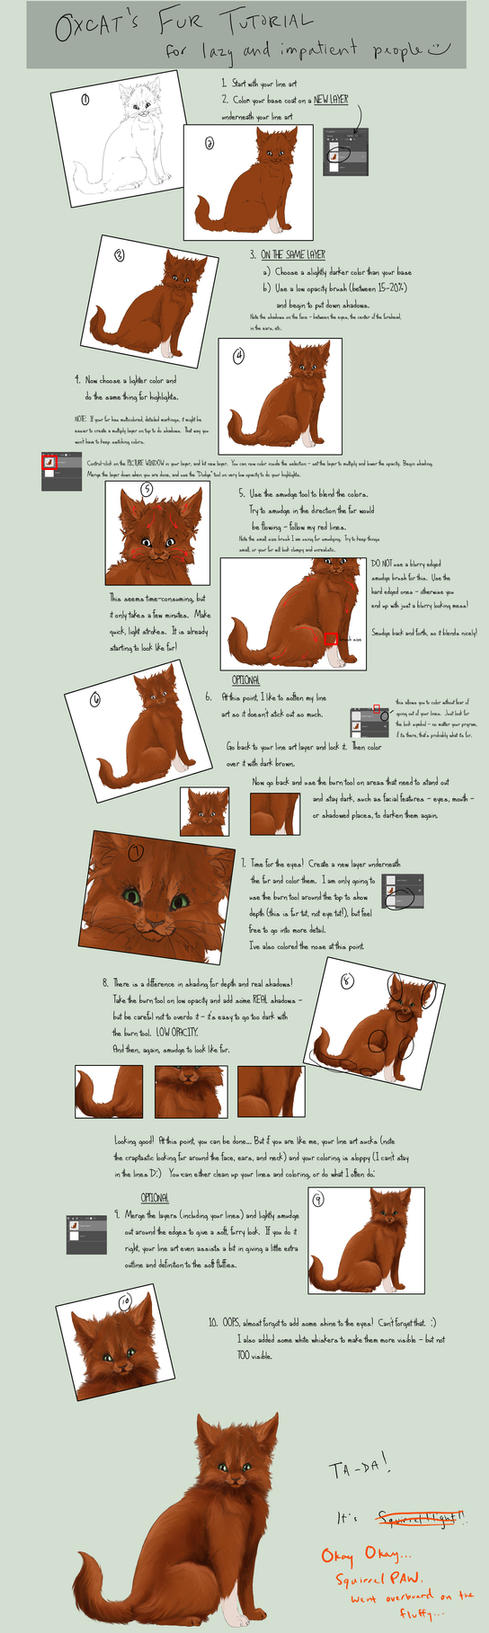 Lazy People Fur Tutorial by oxcat